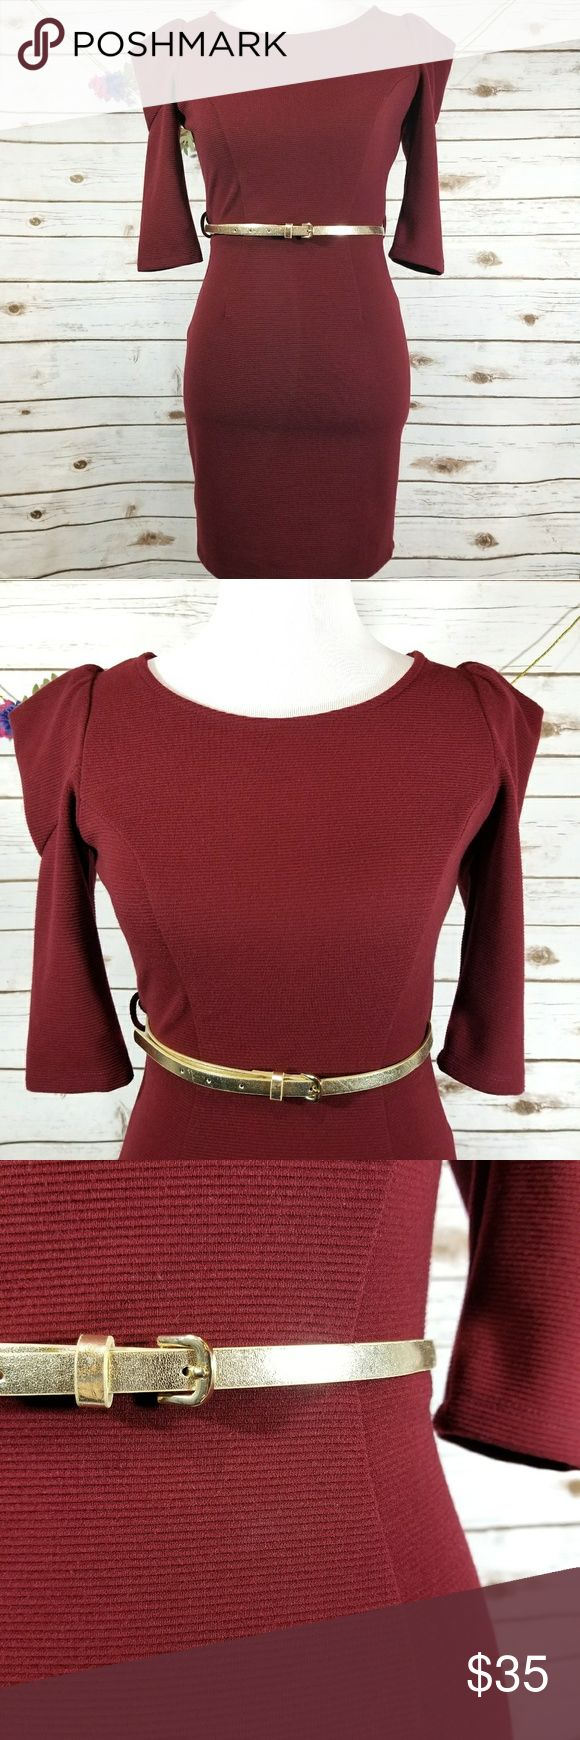 "Apricot Lane boutique burgundy dress This burgundy dress has 3/4"" sleeves. The dress fits tight and zips up the back (zipper is approx 17.5""). Length from the top of the shoulder to the bottom is approx 31.5"", bust is approx 32"". All measurements taken unstretched. 94% polyester, 6% spandex. Please note: the gold belt did not come with the dress but I am including it in the listing. The belt is a size s/m from forever 21 and is approx 39.5"". Apricot Lane Dresses Mini"